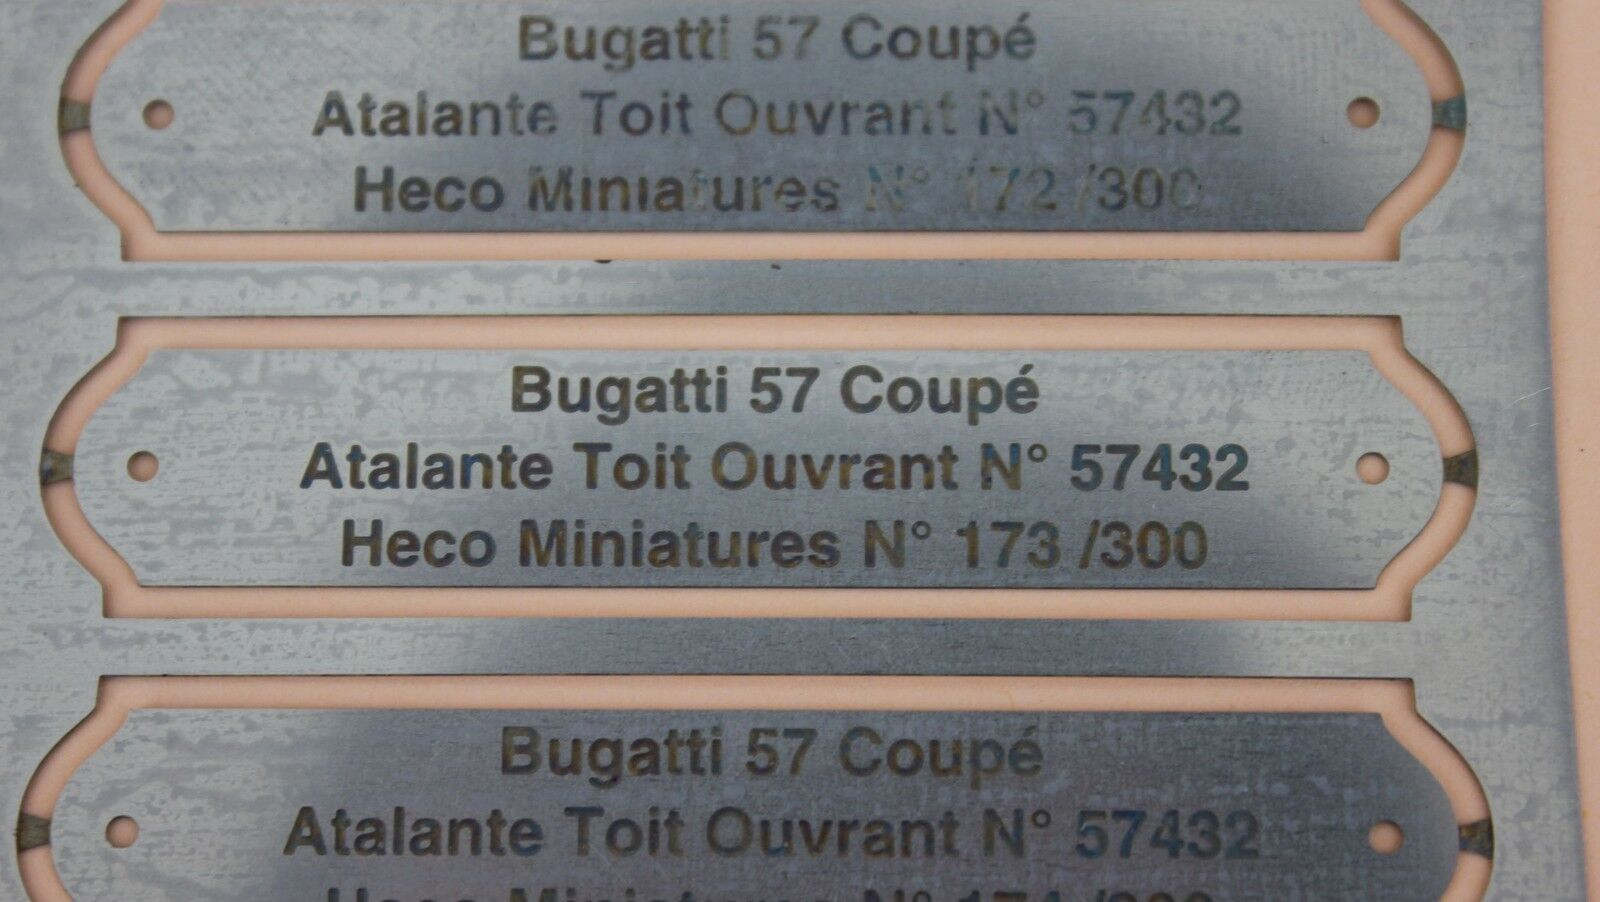 Heco miniatures ol 1 engraved metal plate numbered bugatti atalante 57432 57 coupe